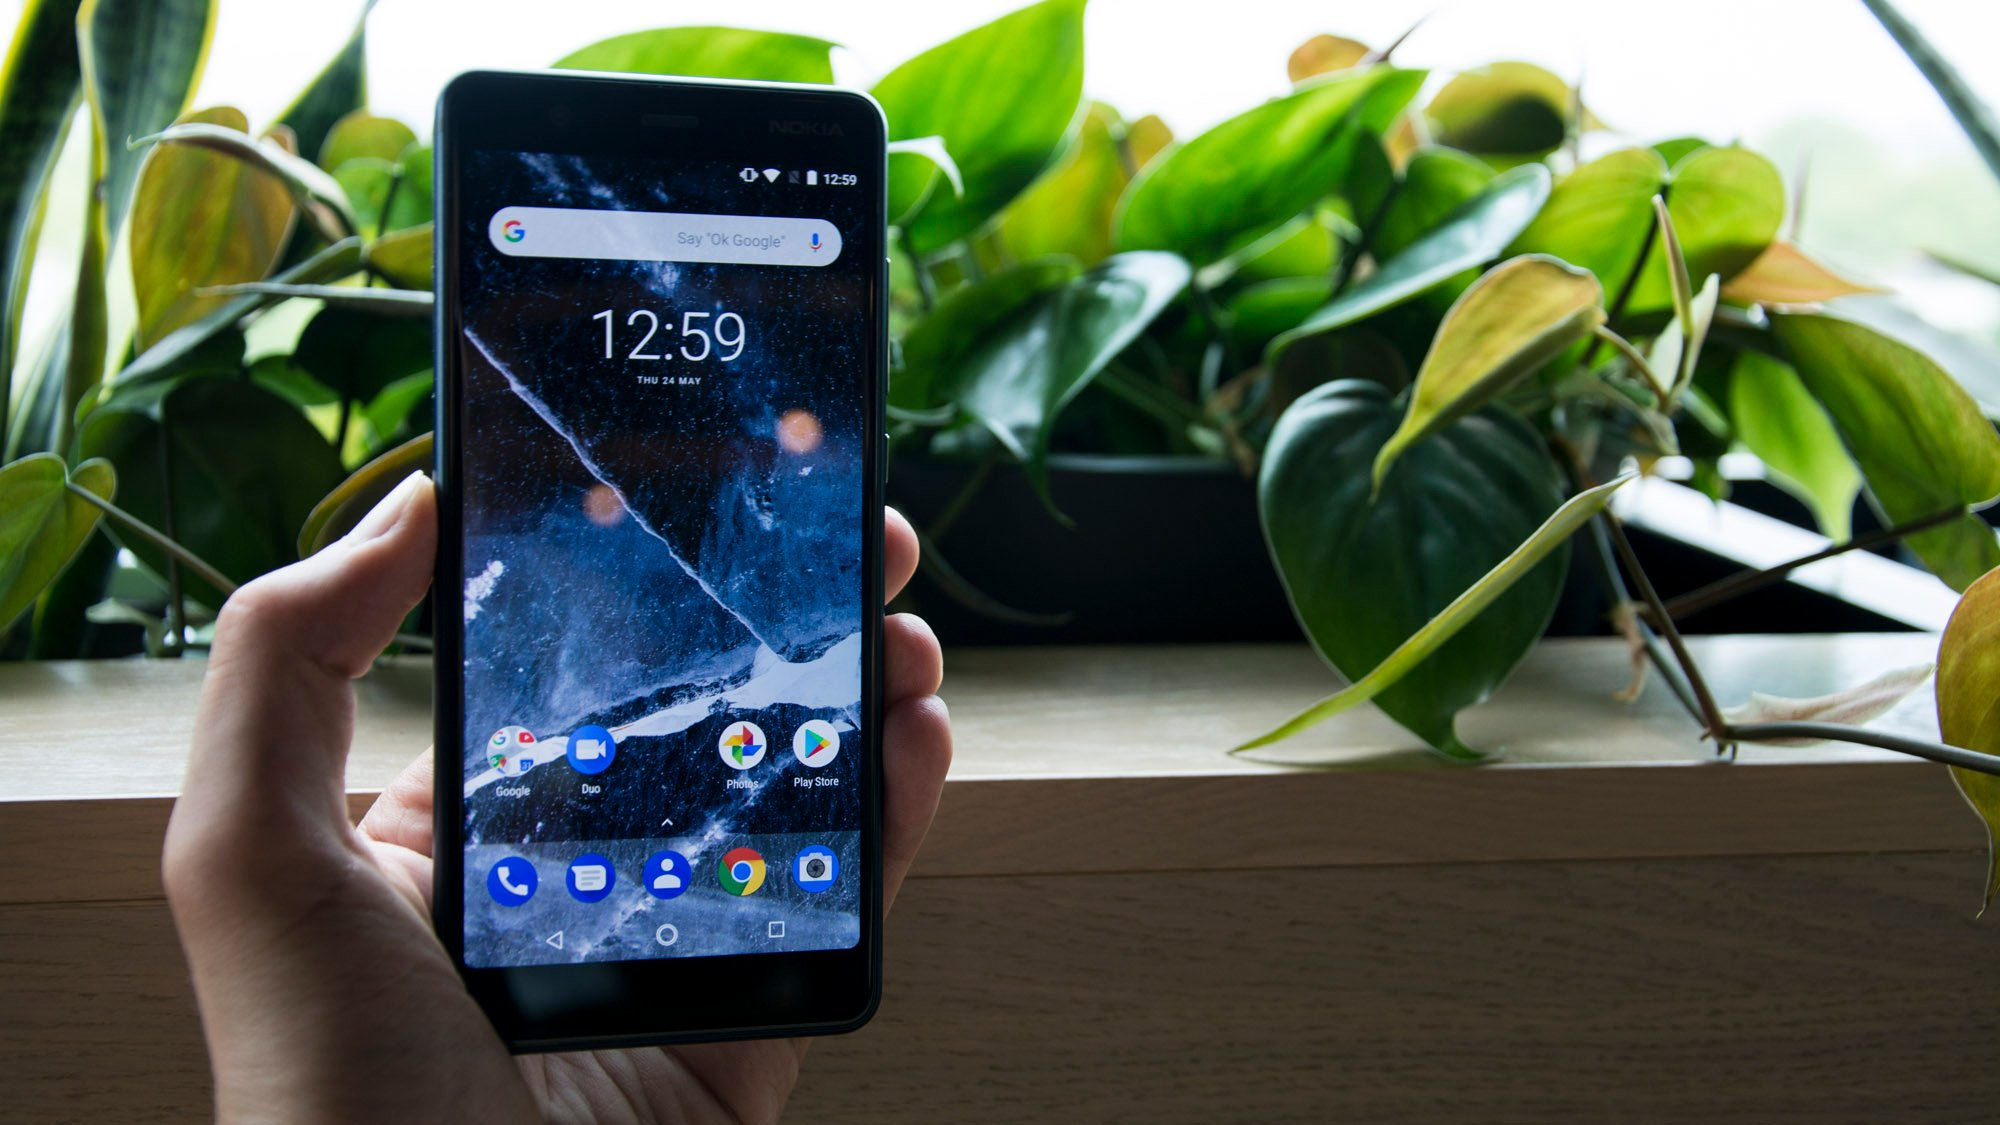 Daftar Harga Htc One E8 Smartphone Dark Grey 16gb 2gb Dual Sim Casio G Shock Ga 500k 3ajr Limited Models Resin Band Nokia 51 Review Hands On With The 5s More Powerful Sibling